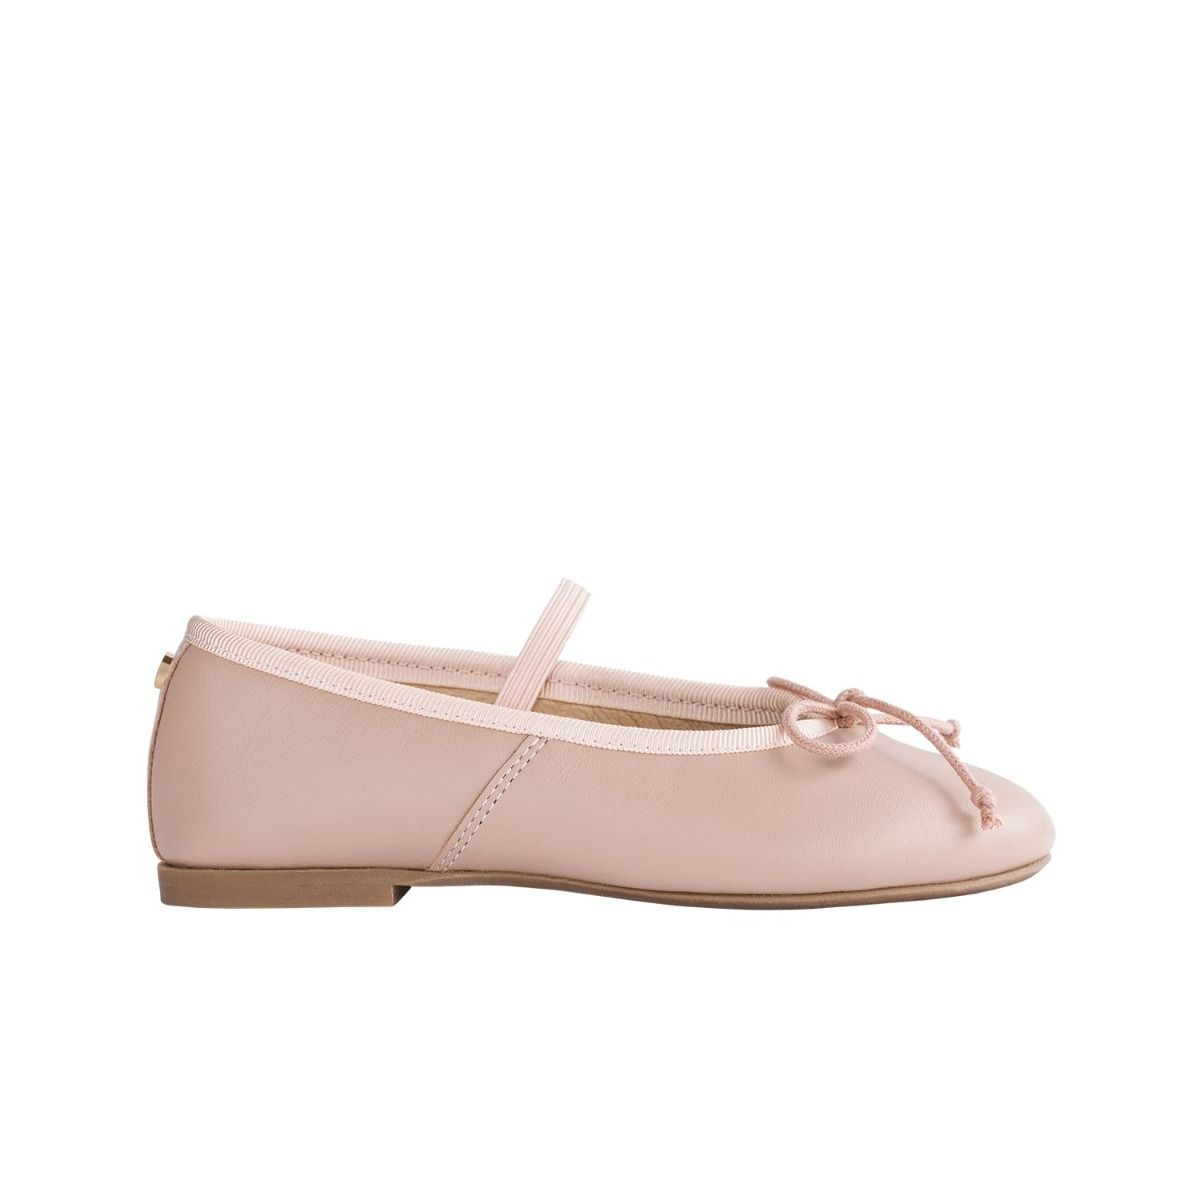 Toddler ballet flats in pale pink leather with bow detail in cord.